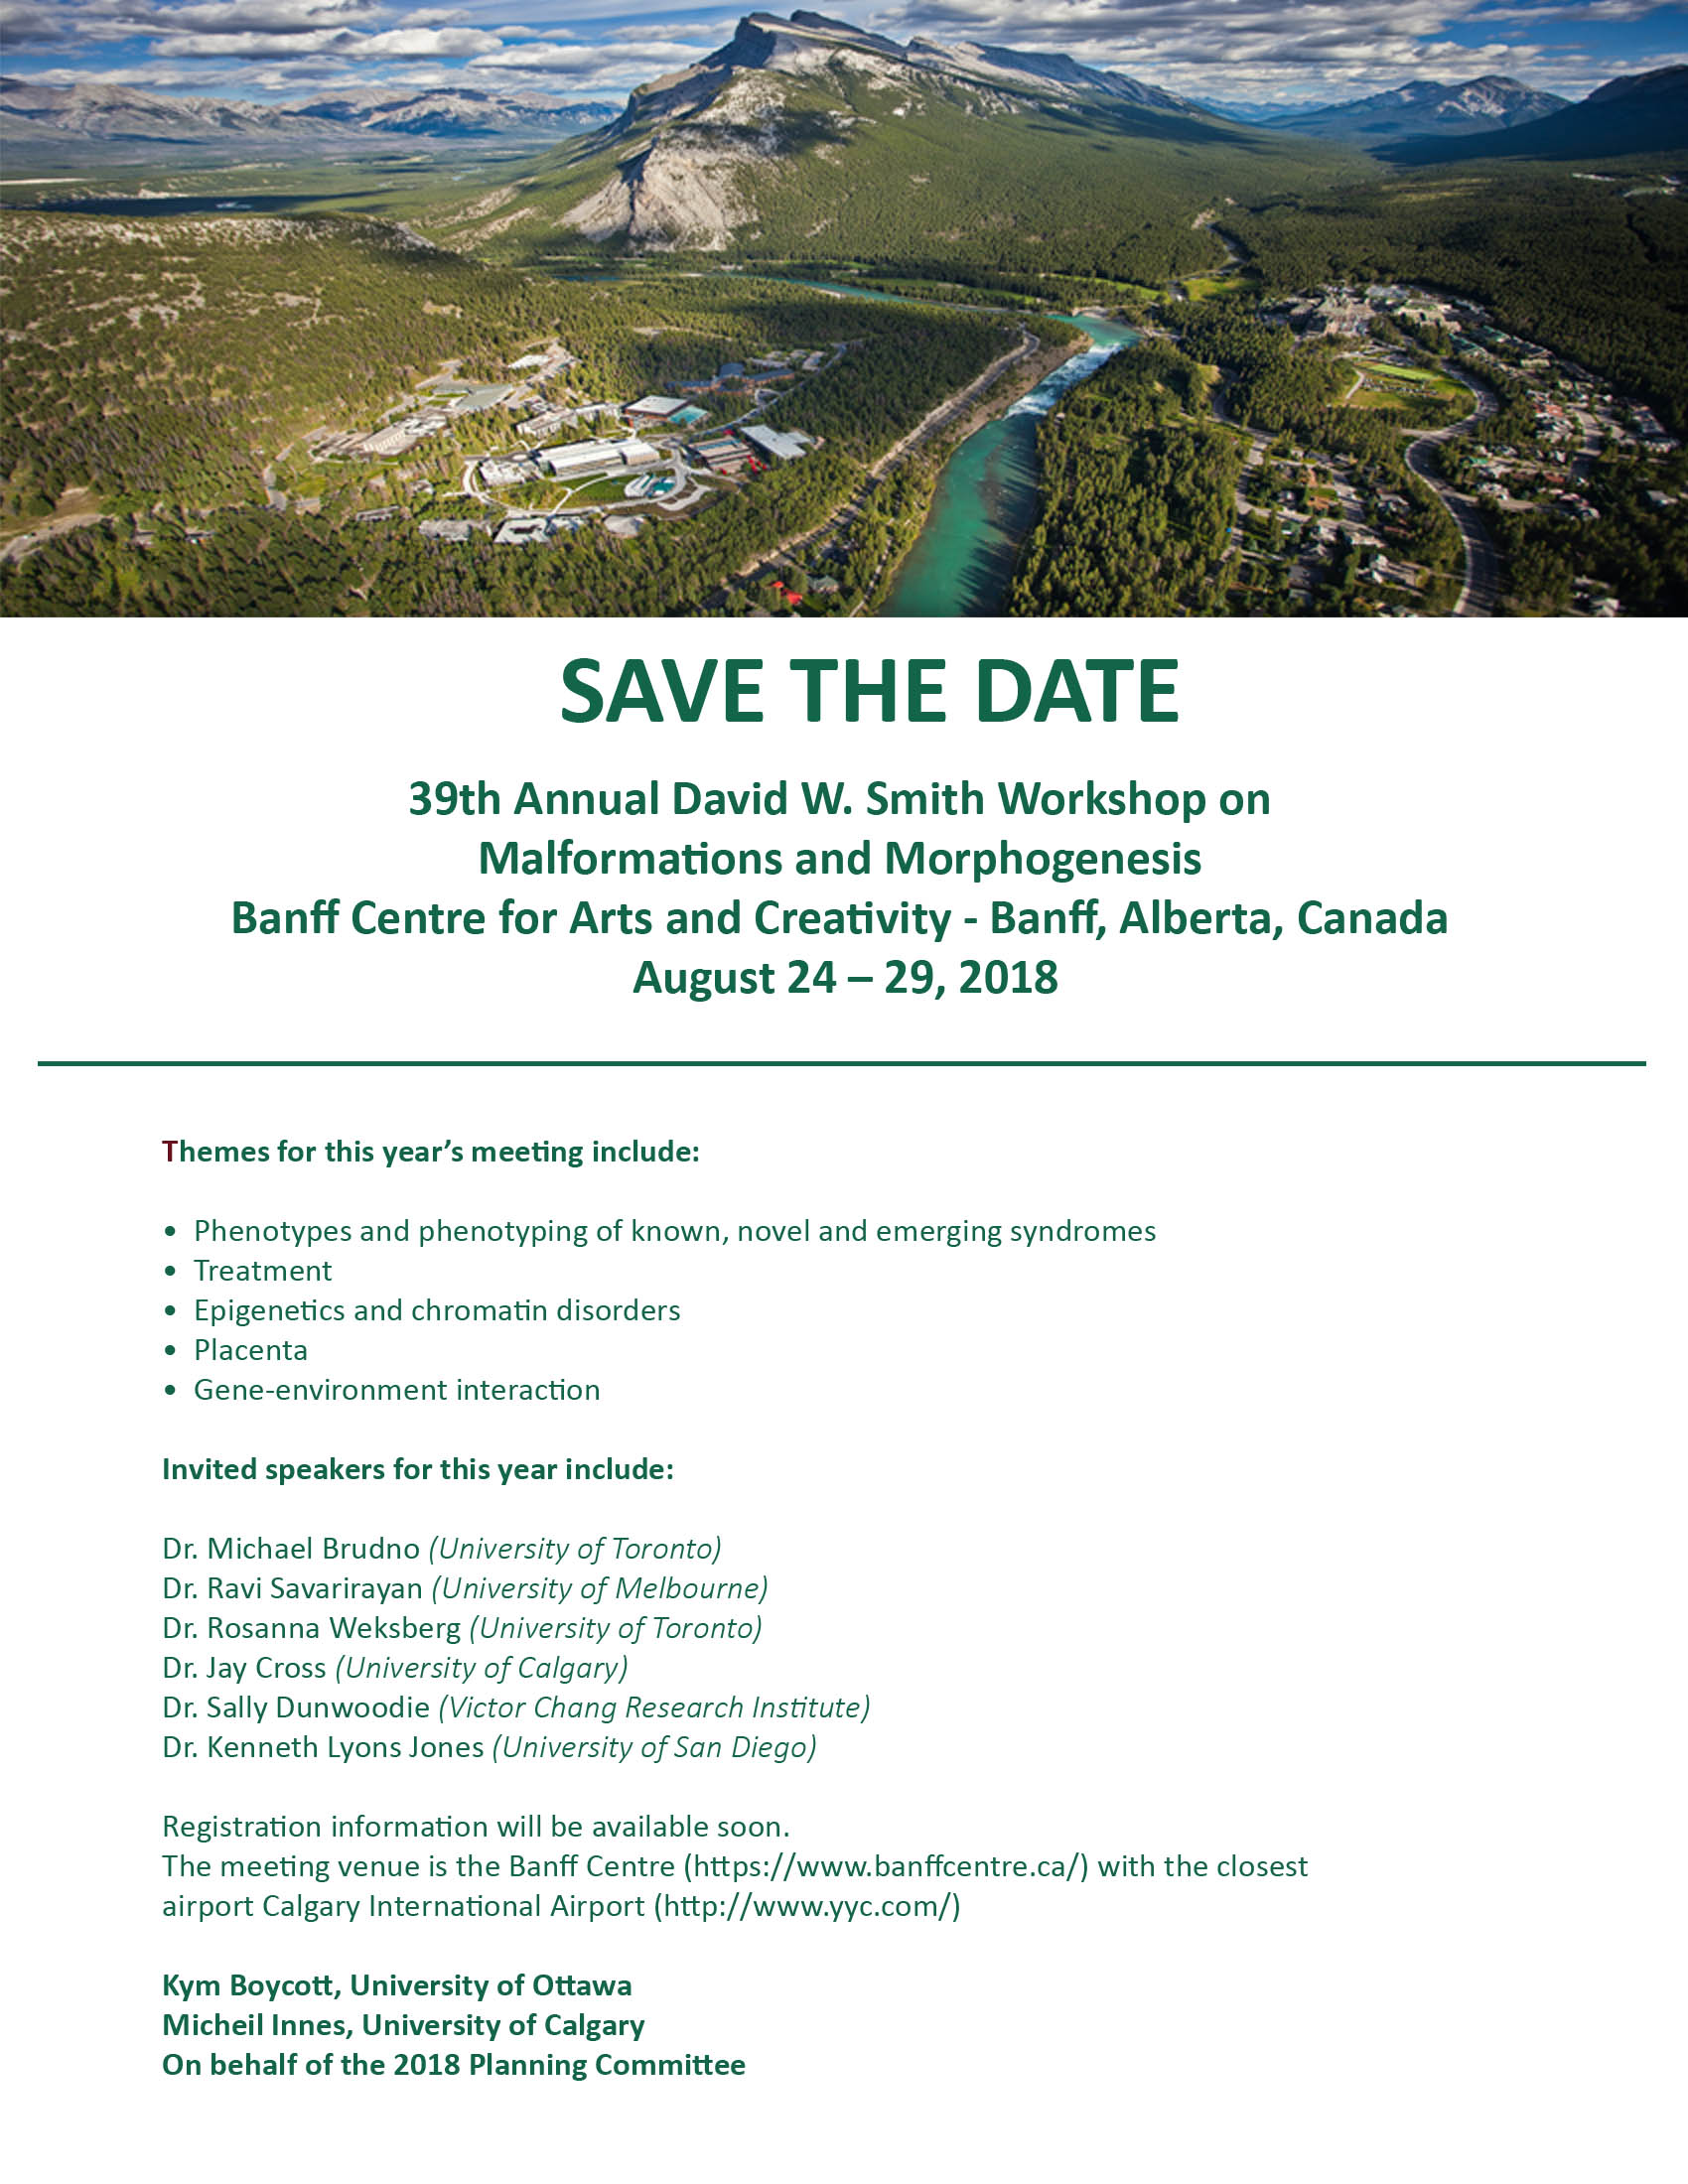 39th Annual David W. Smith Workshop on Malformations and Morphogenesis Banner